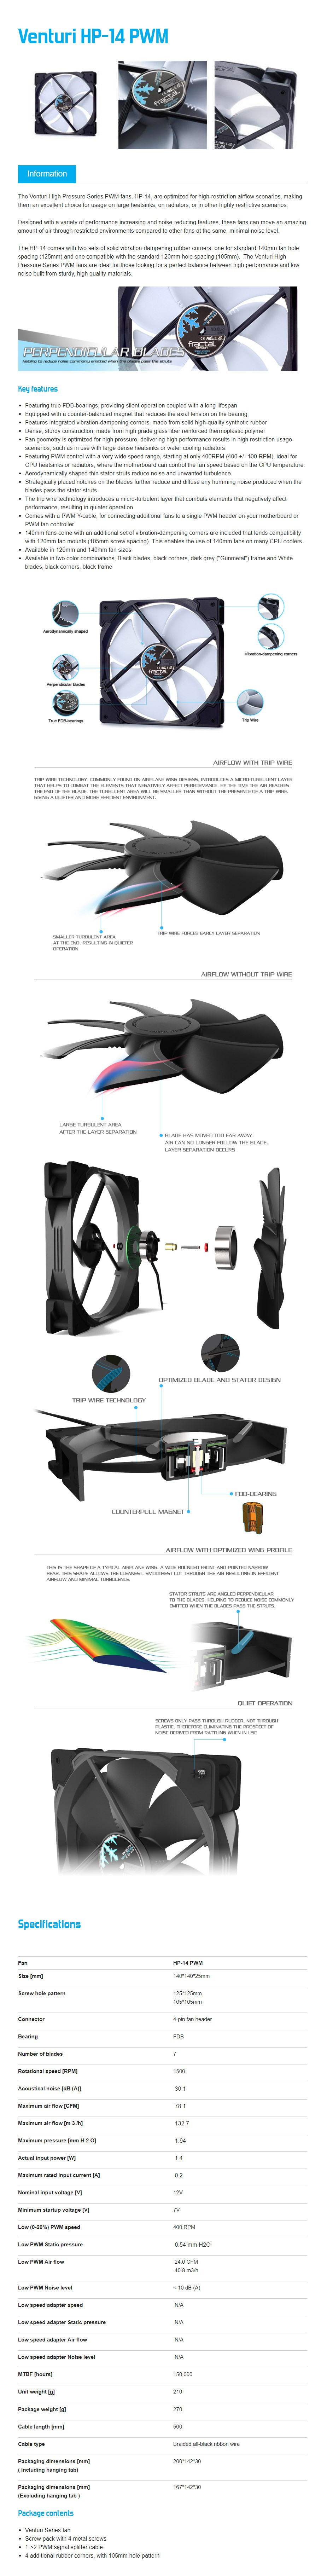 Fractal Design Venturi Series HP-14 140mm PWM Case Fan - Black/White - Desktop Overview 1